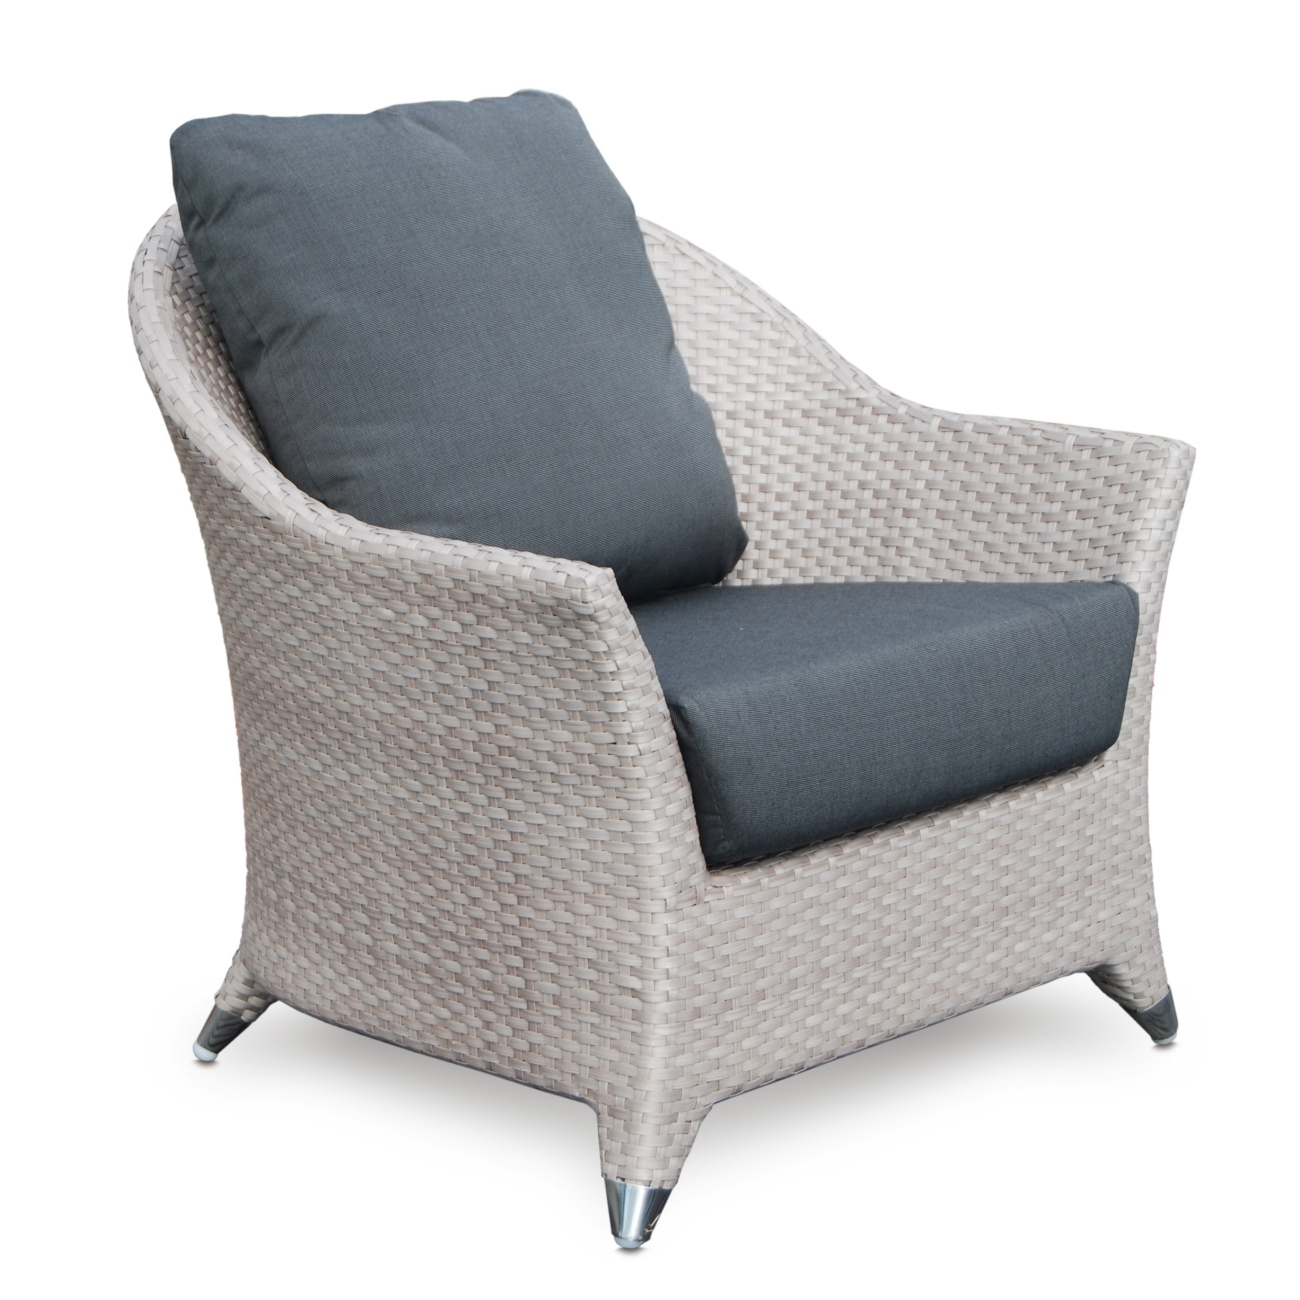 chair covers malta wood high for baby skyline armchair  luxury outdoor living